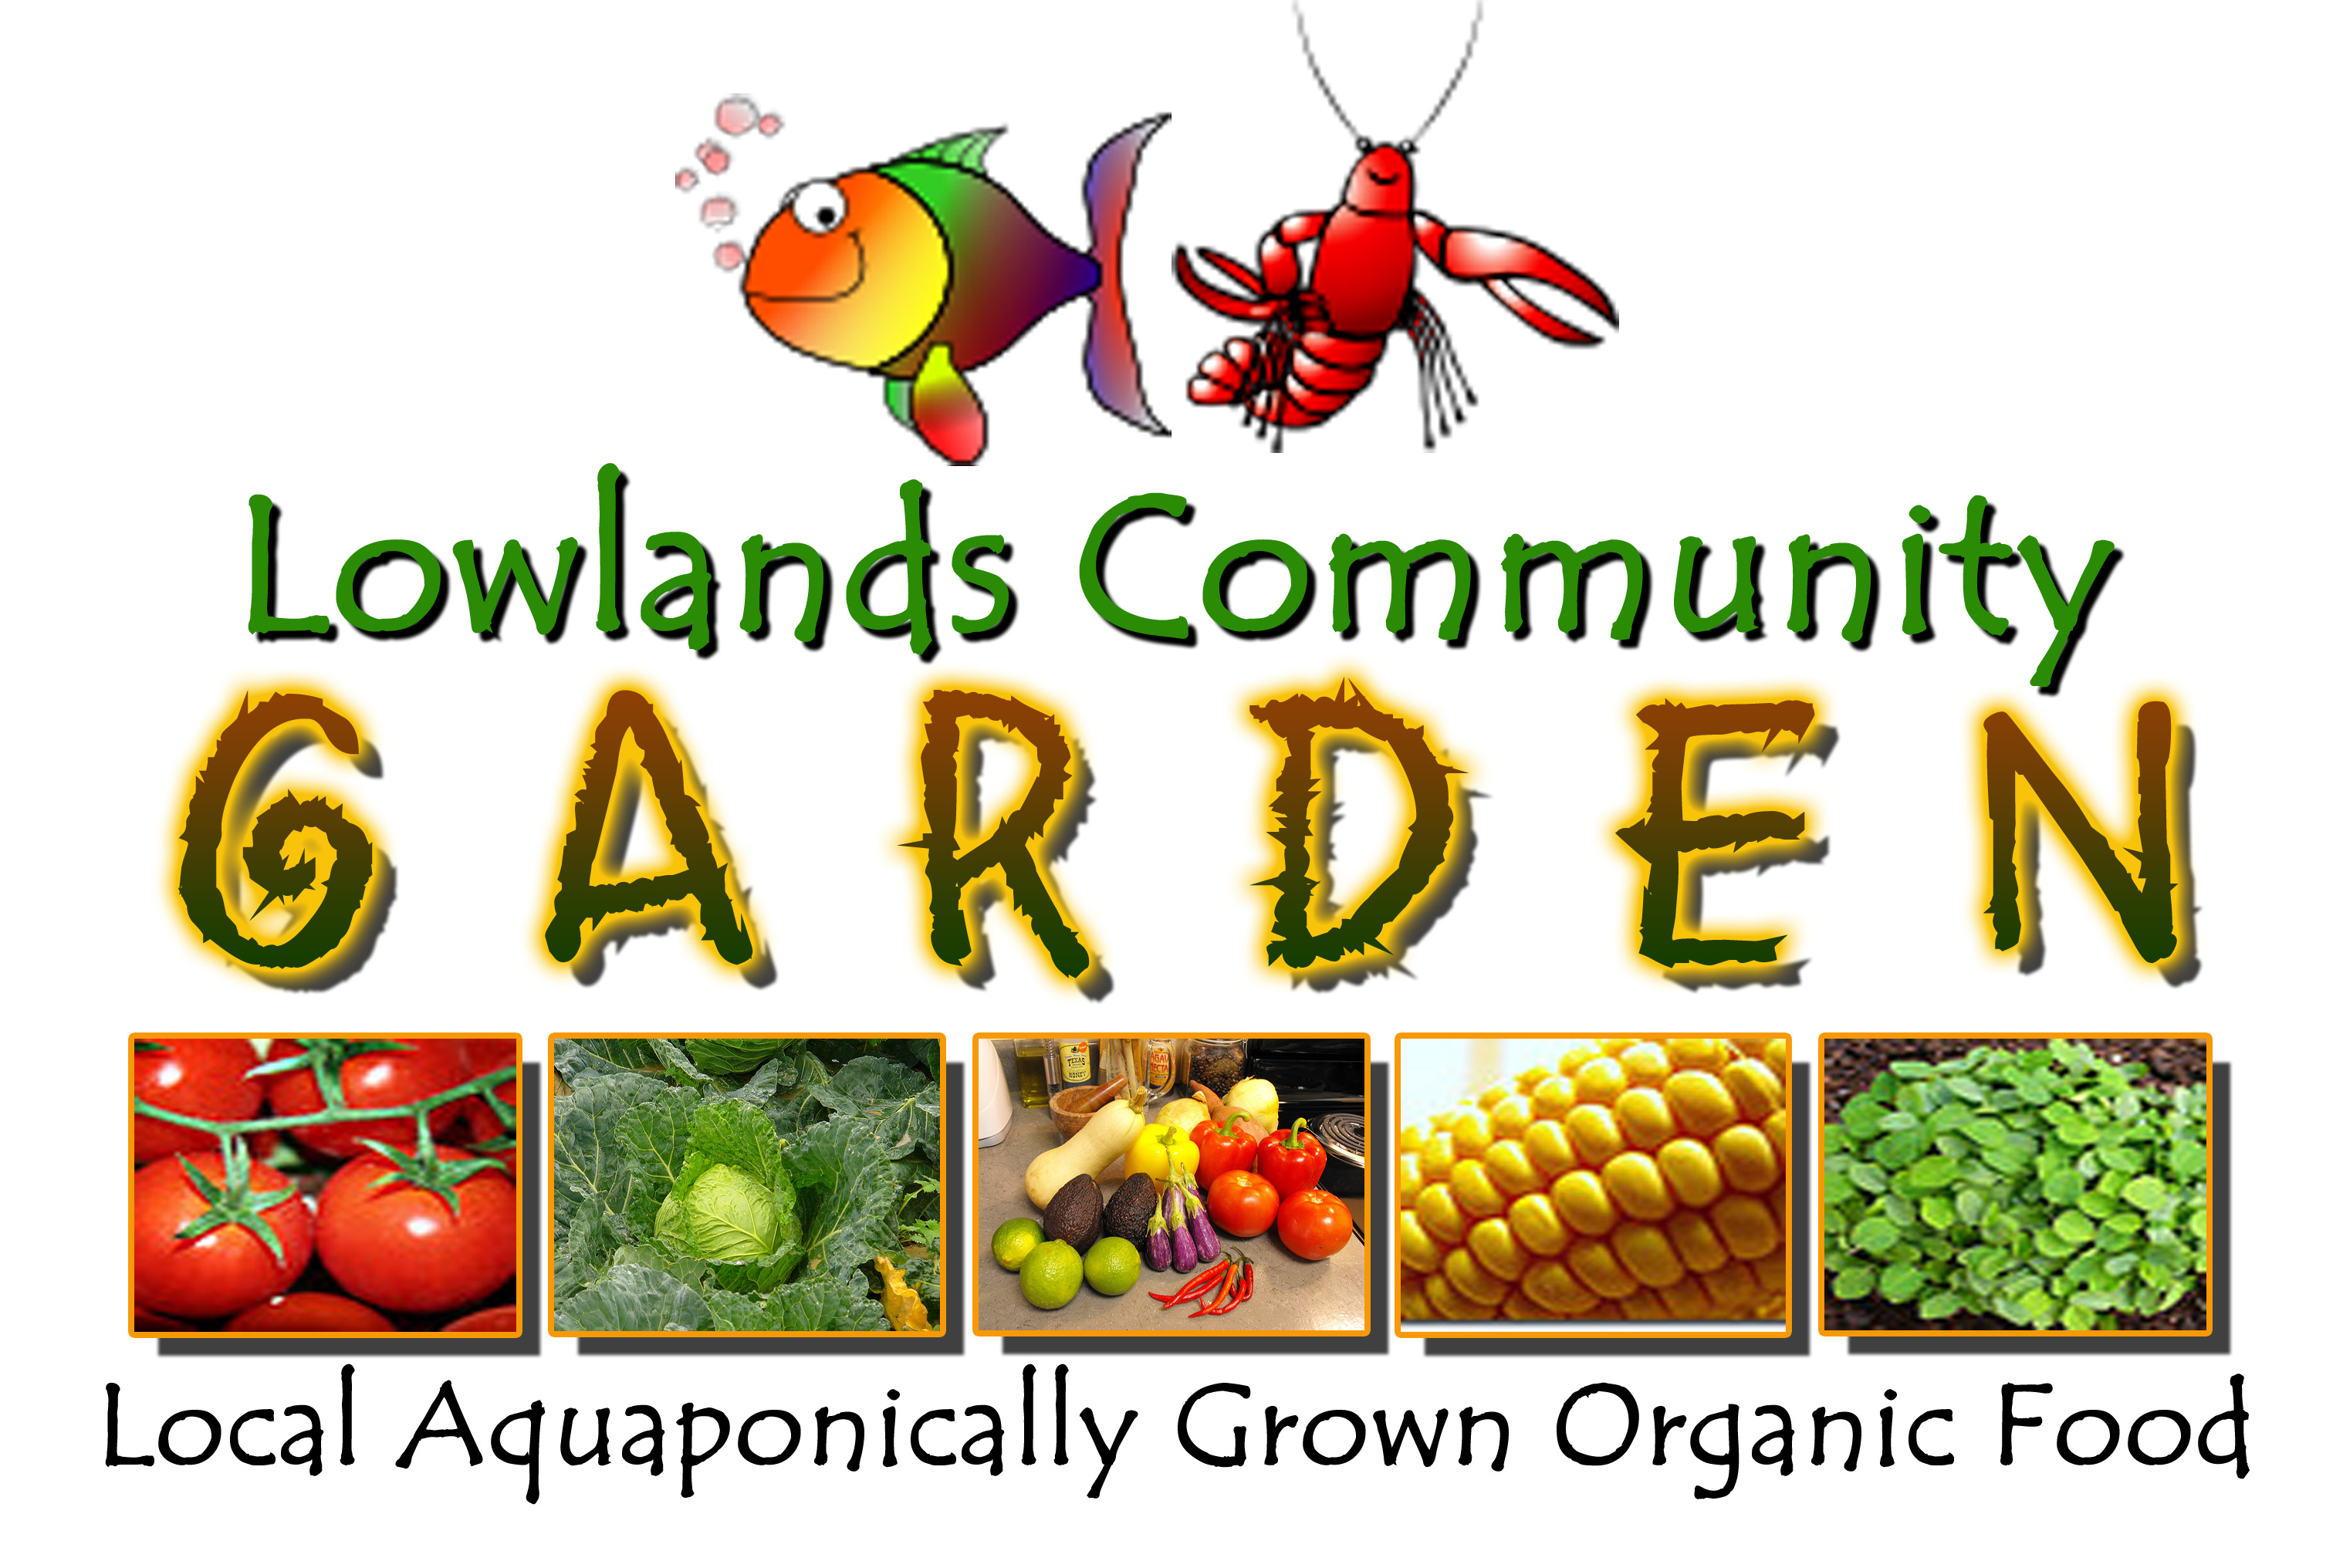 Introducing the Lowlands Community Garden